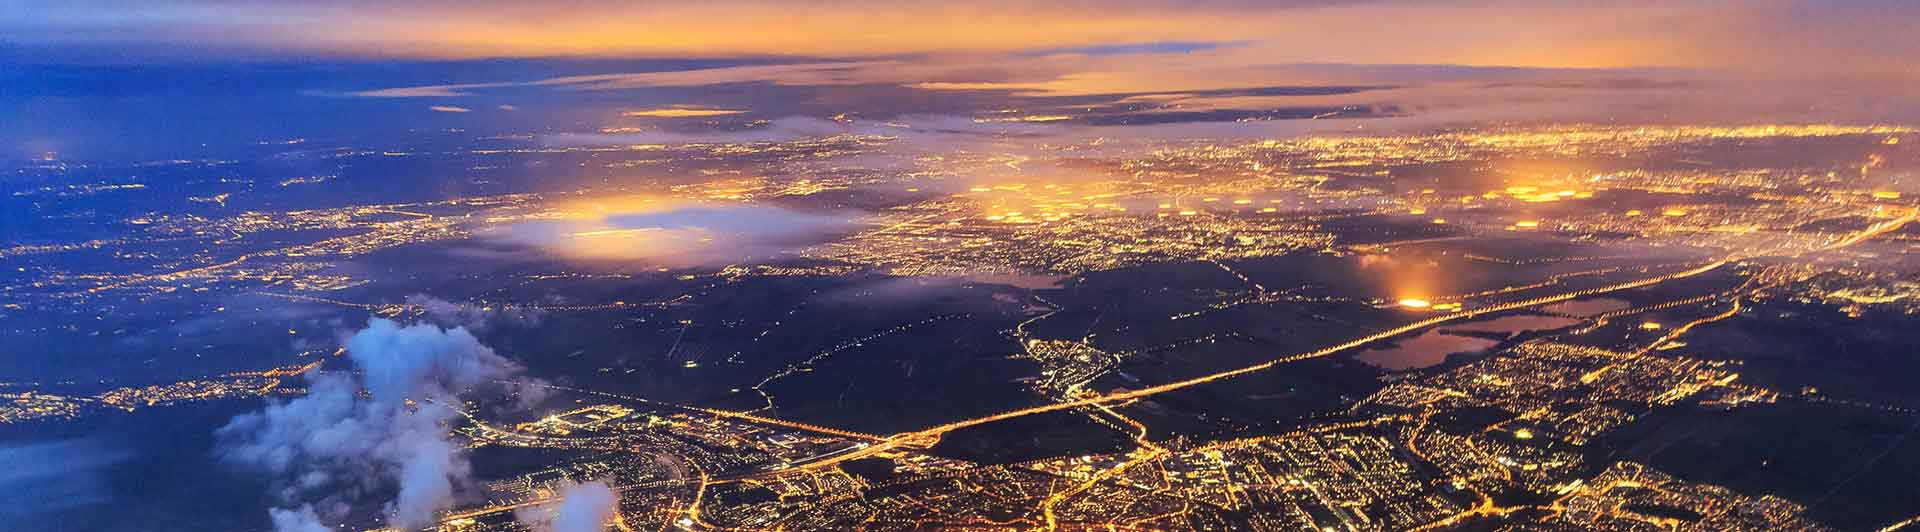 Aerial view of city lights at night